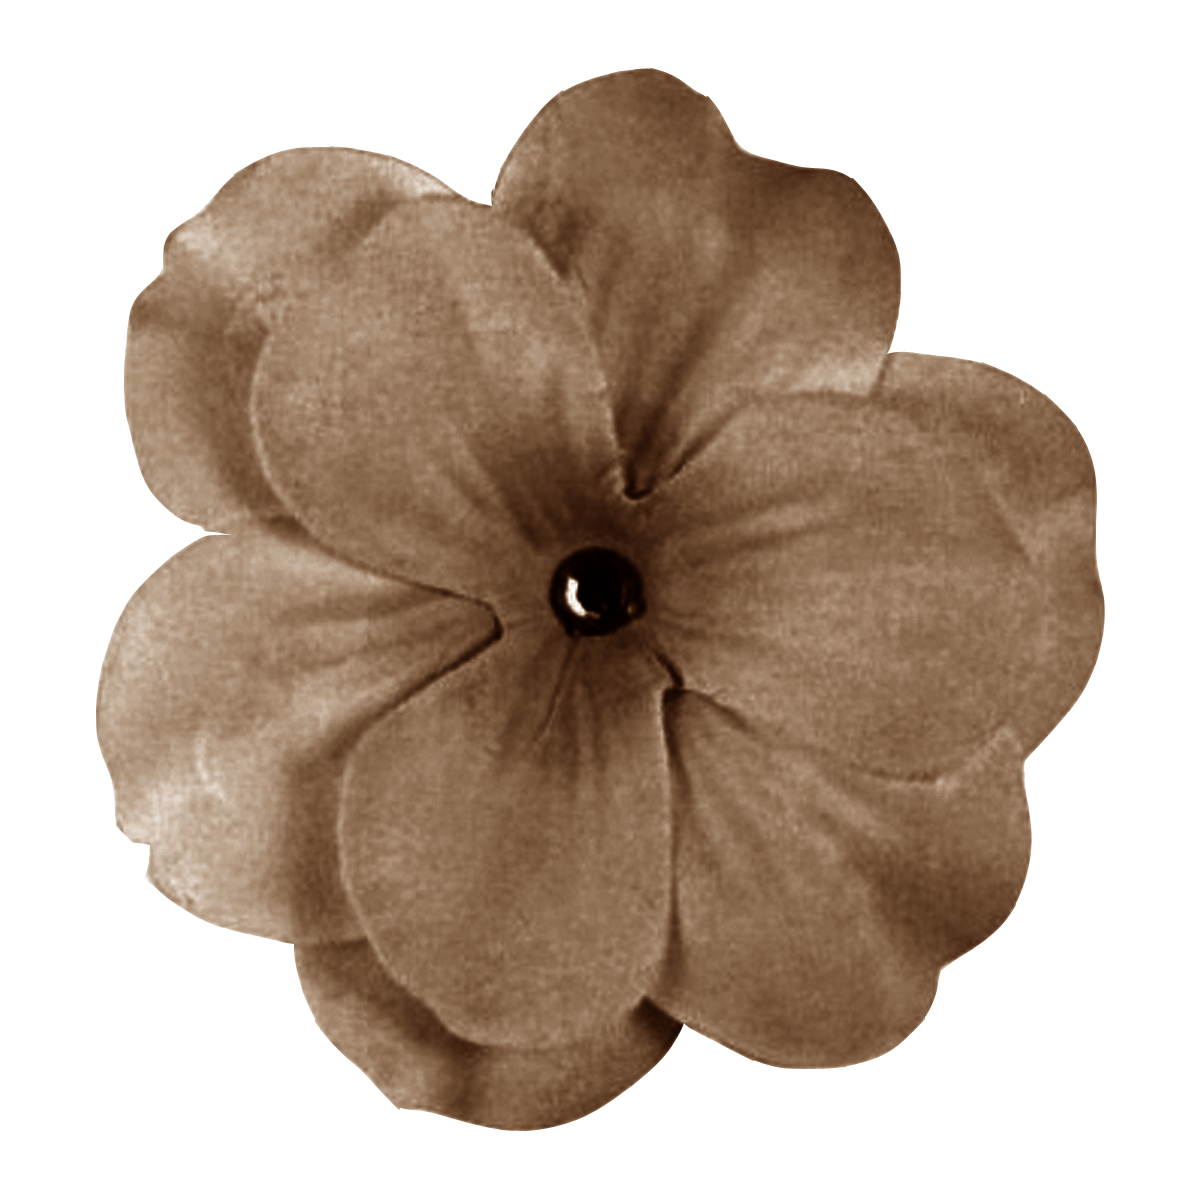 Brown flower png. Grannyenchanted com free elements